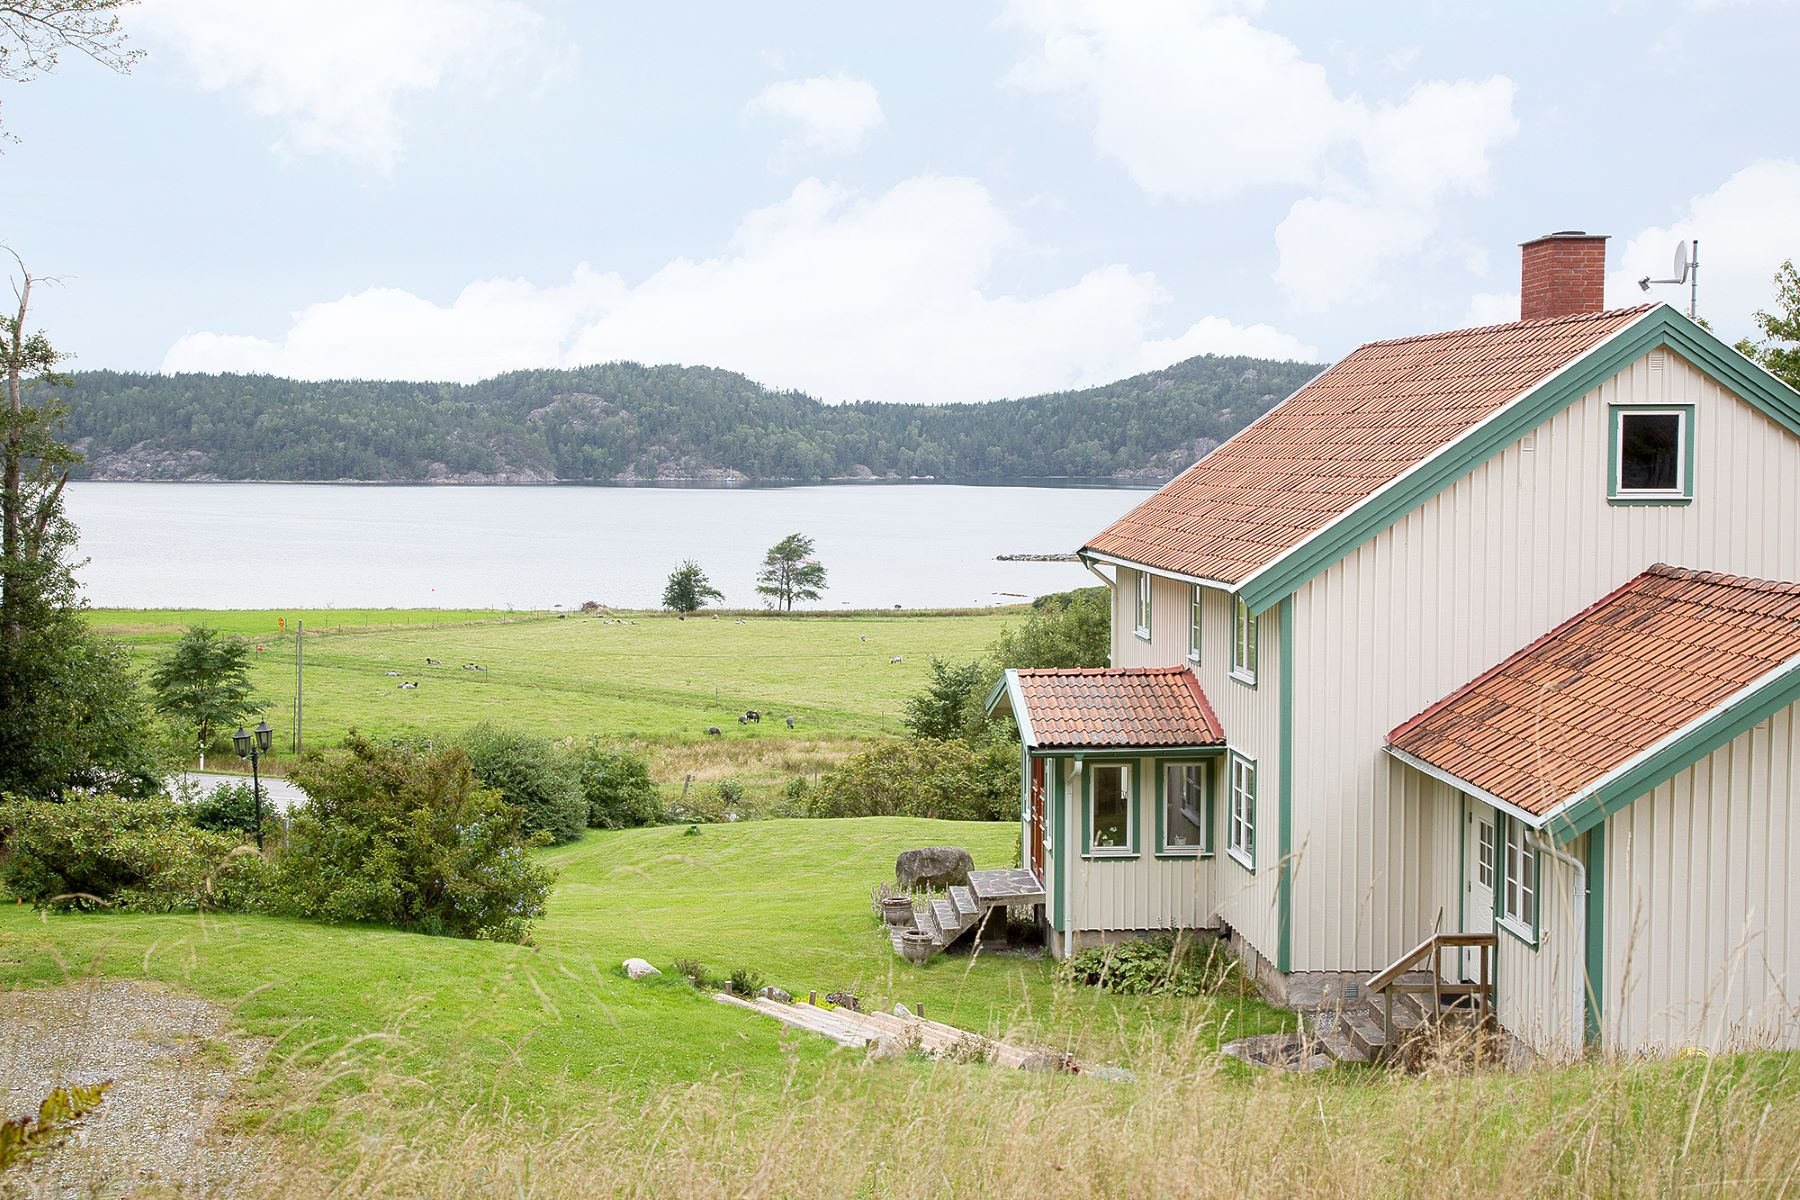 Single Family Home for Sale at BEAUTIFUL FARMSTEAD WITH A SEA VIEW Other Vastra Gotaland, Vastra Gotaland Sweden